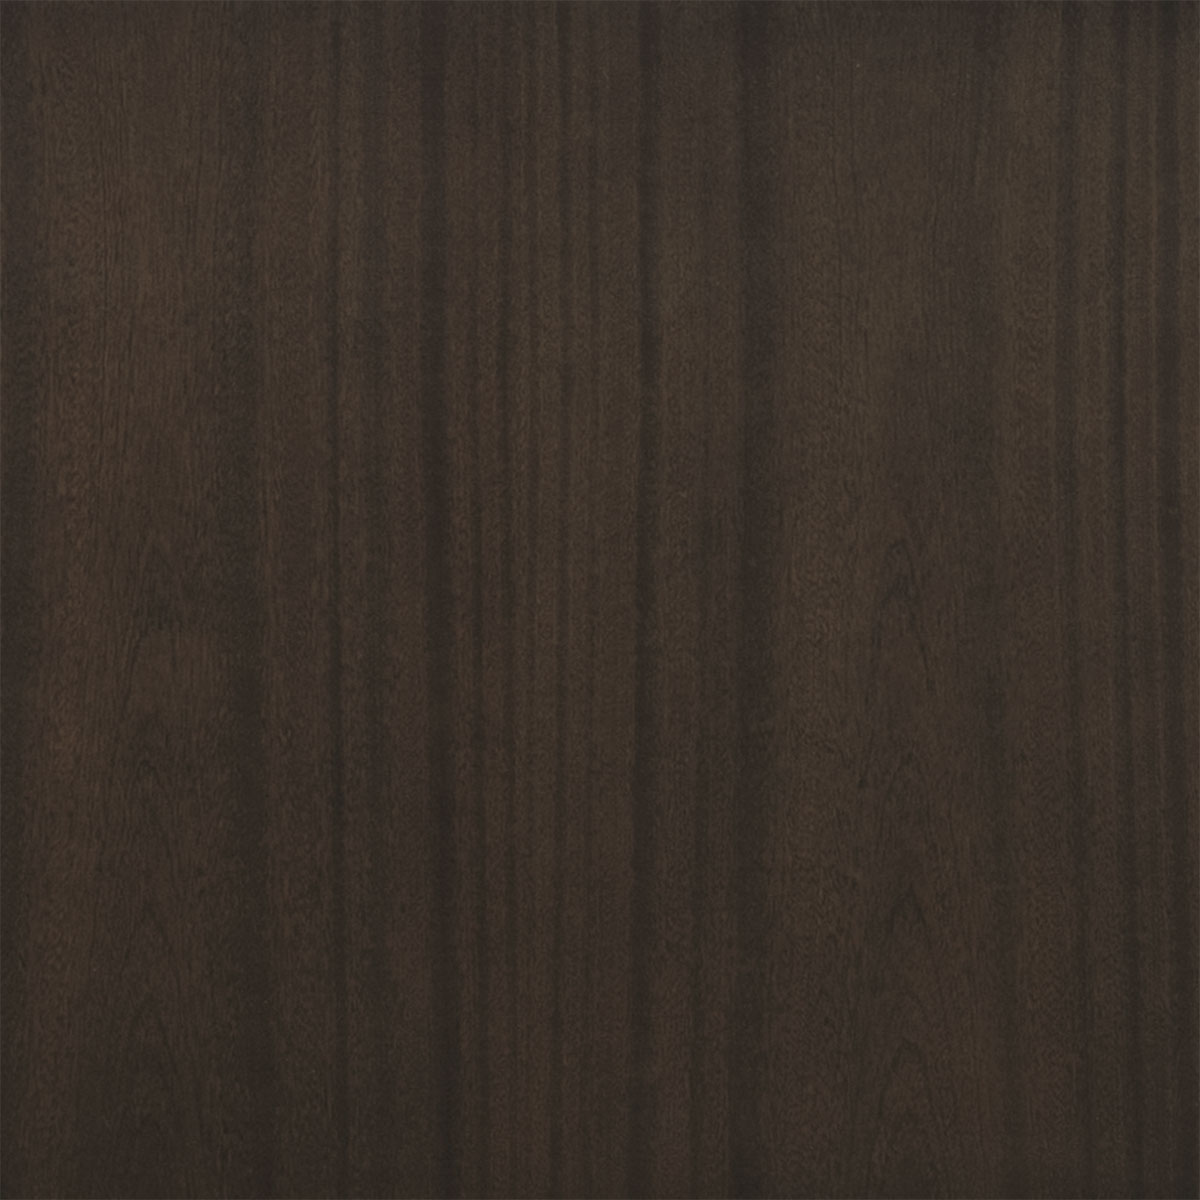 Mahogany Wood, Coffee Bean Finish